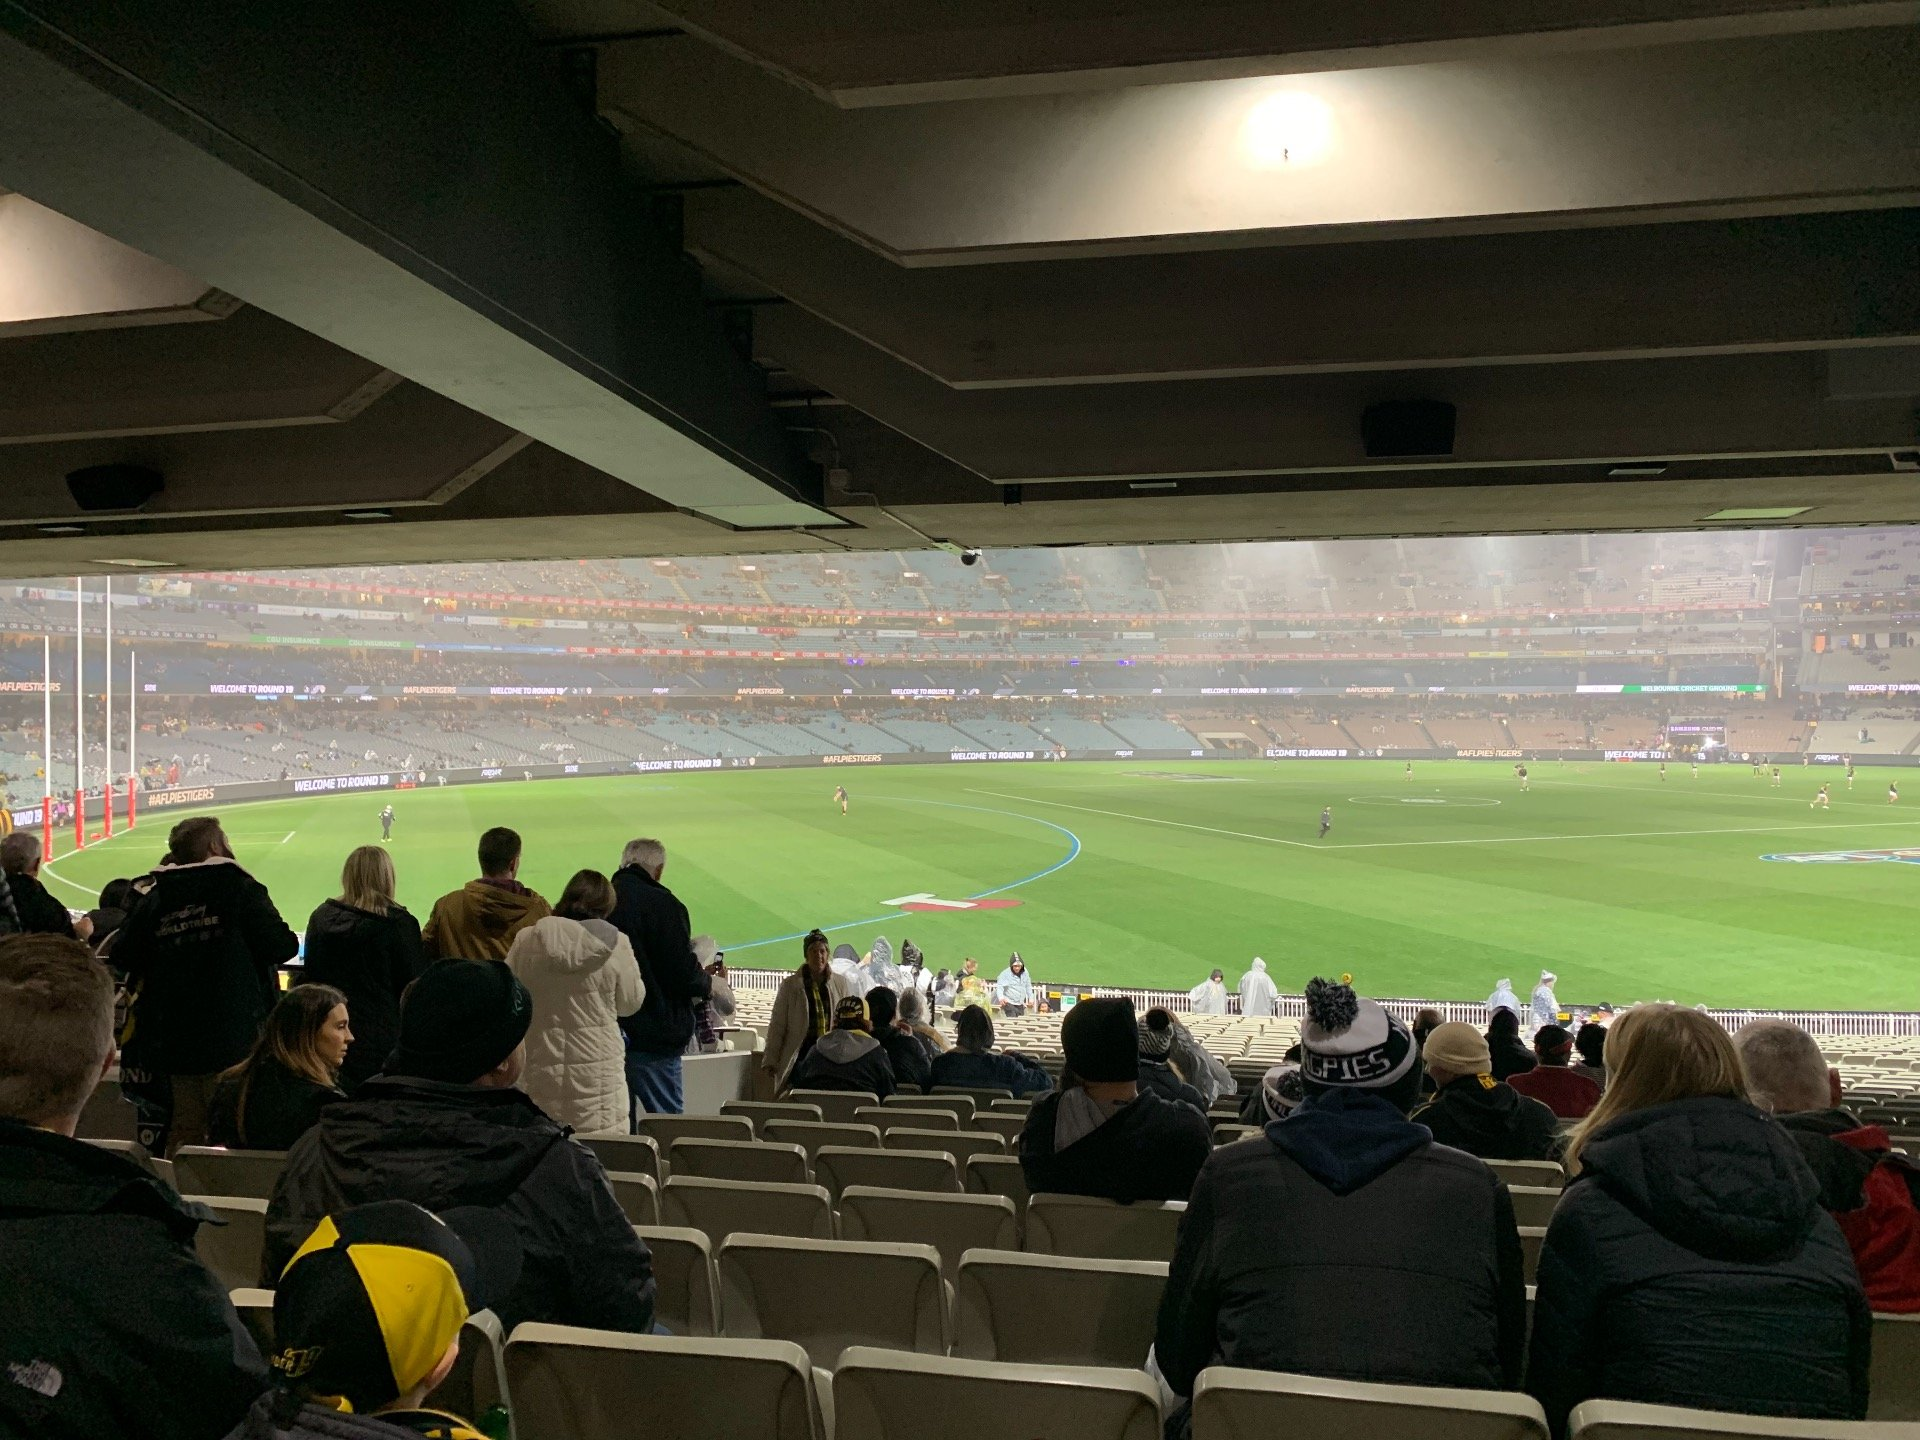 Melbourne Cricket Ground Section M42 Row Kk Seat 11